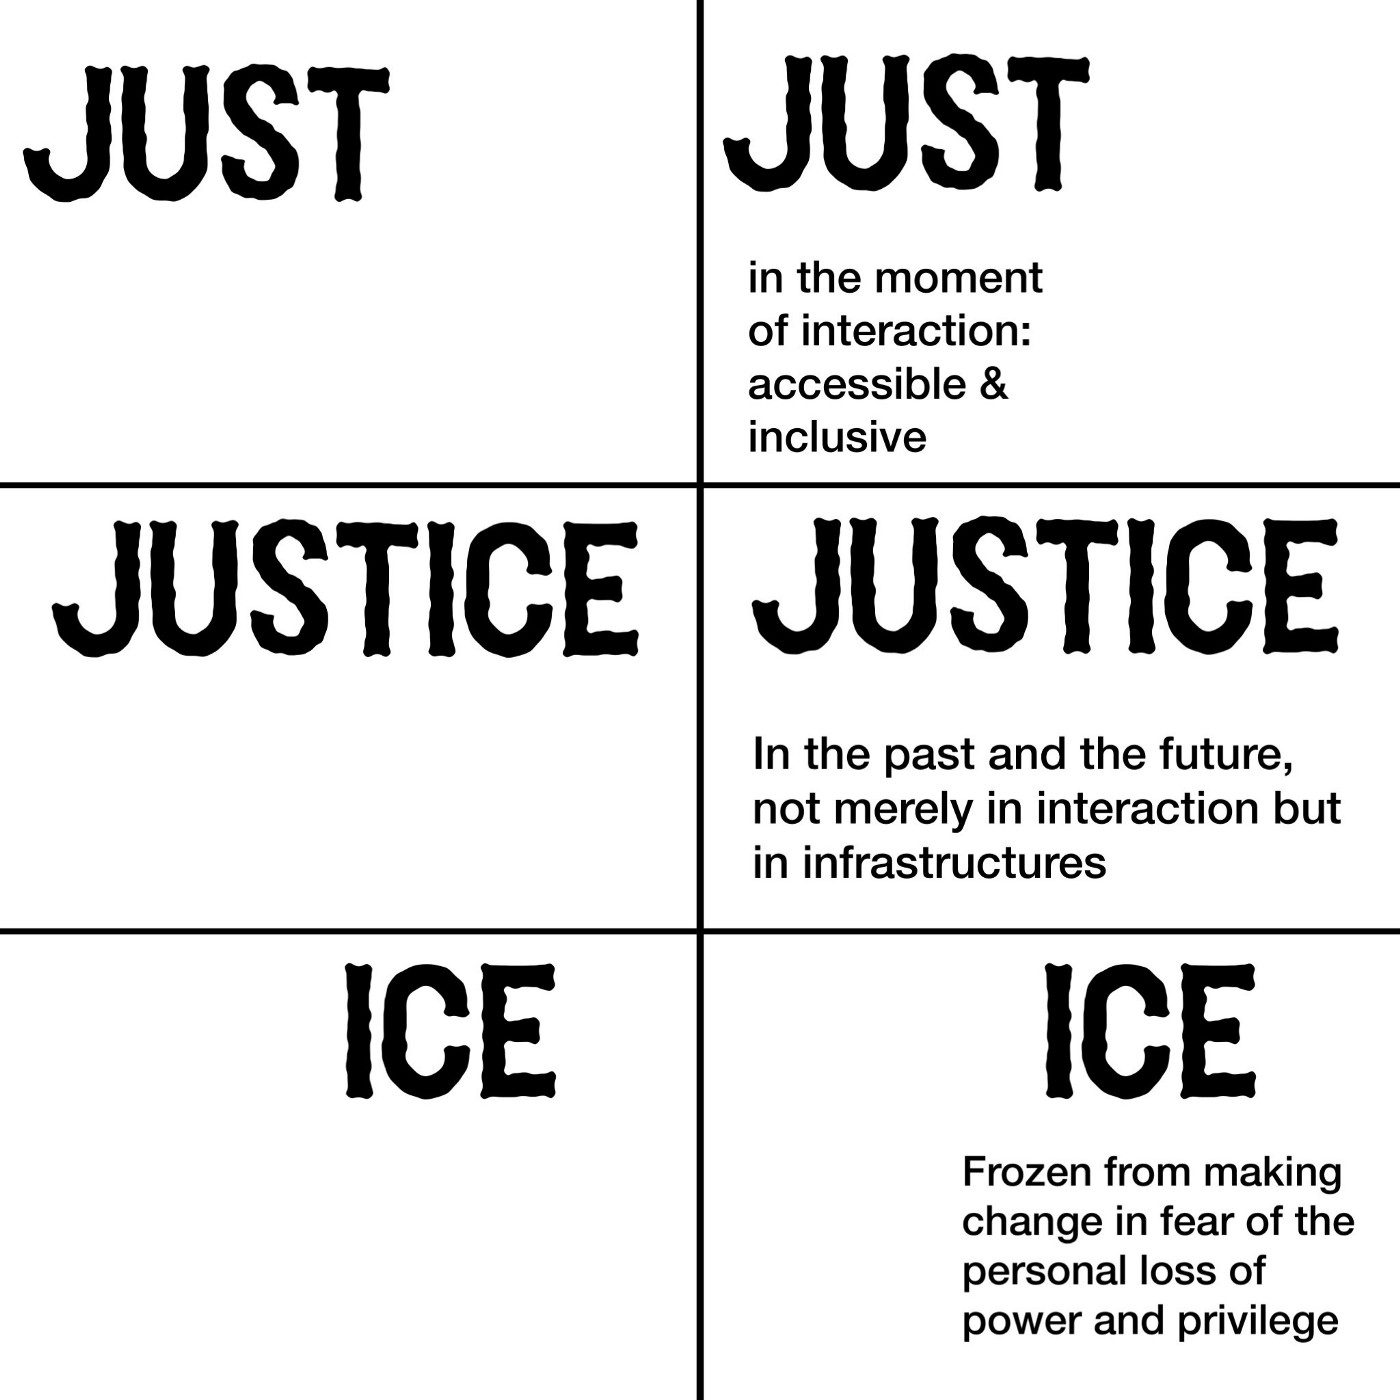 Slides on Just, Justice, Ice model discussing in post